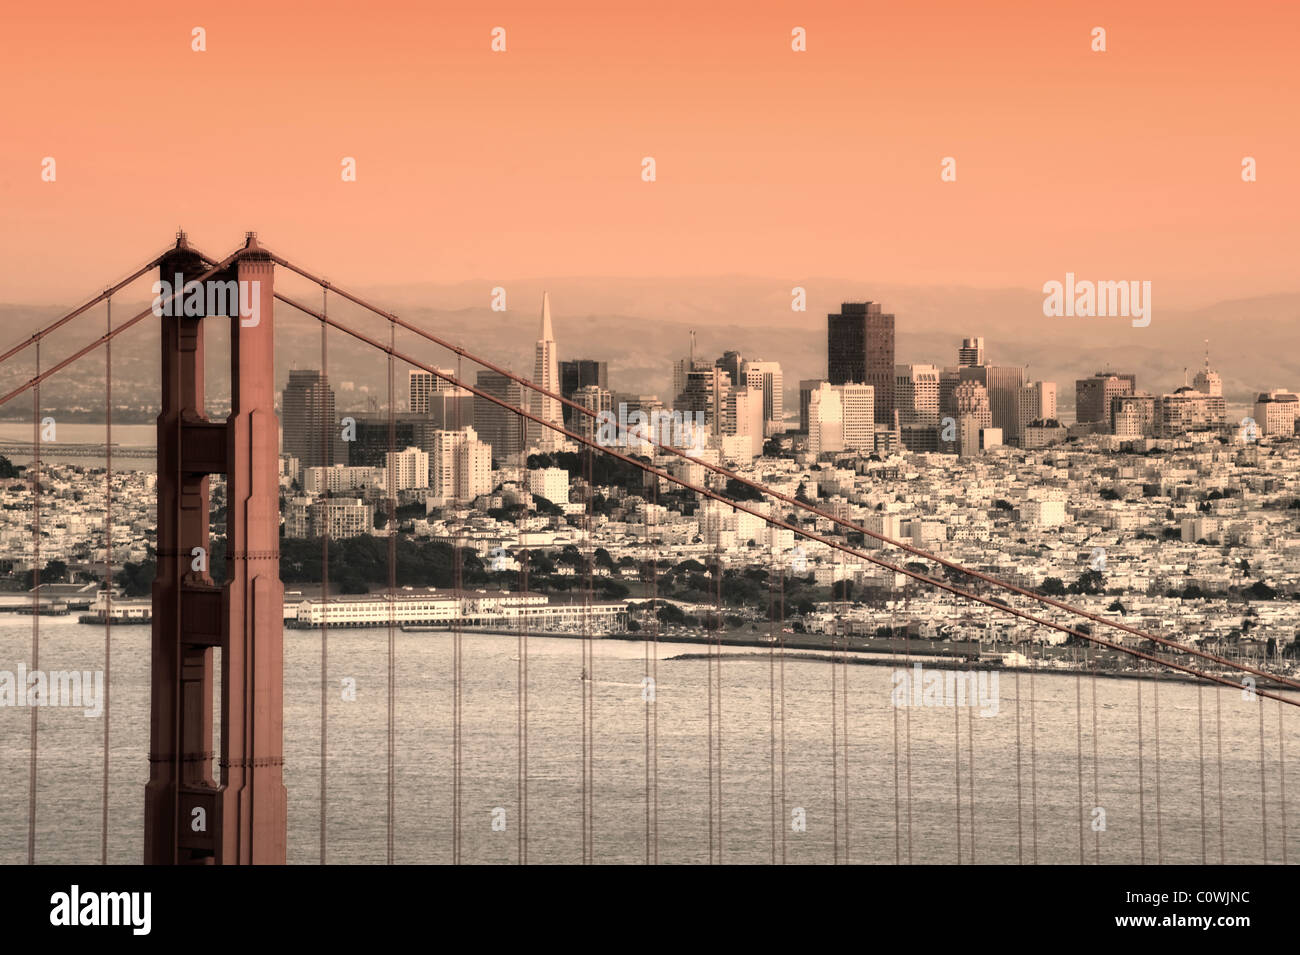 Usa, California, San Francisco, City Skyline and Golden Gate Bridge - Stock Image